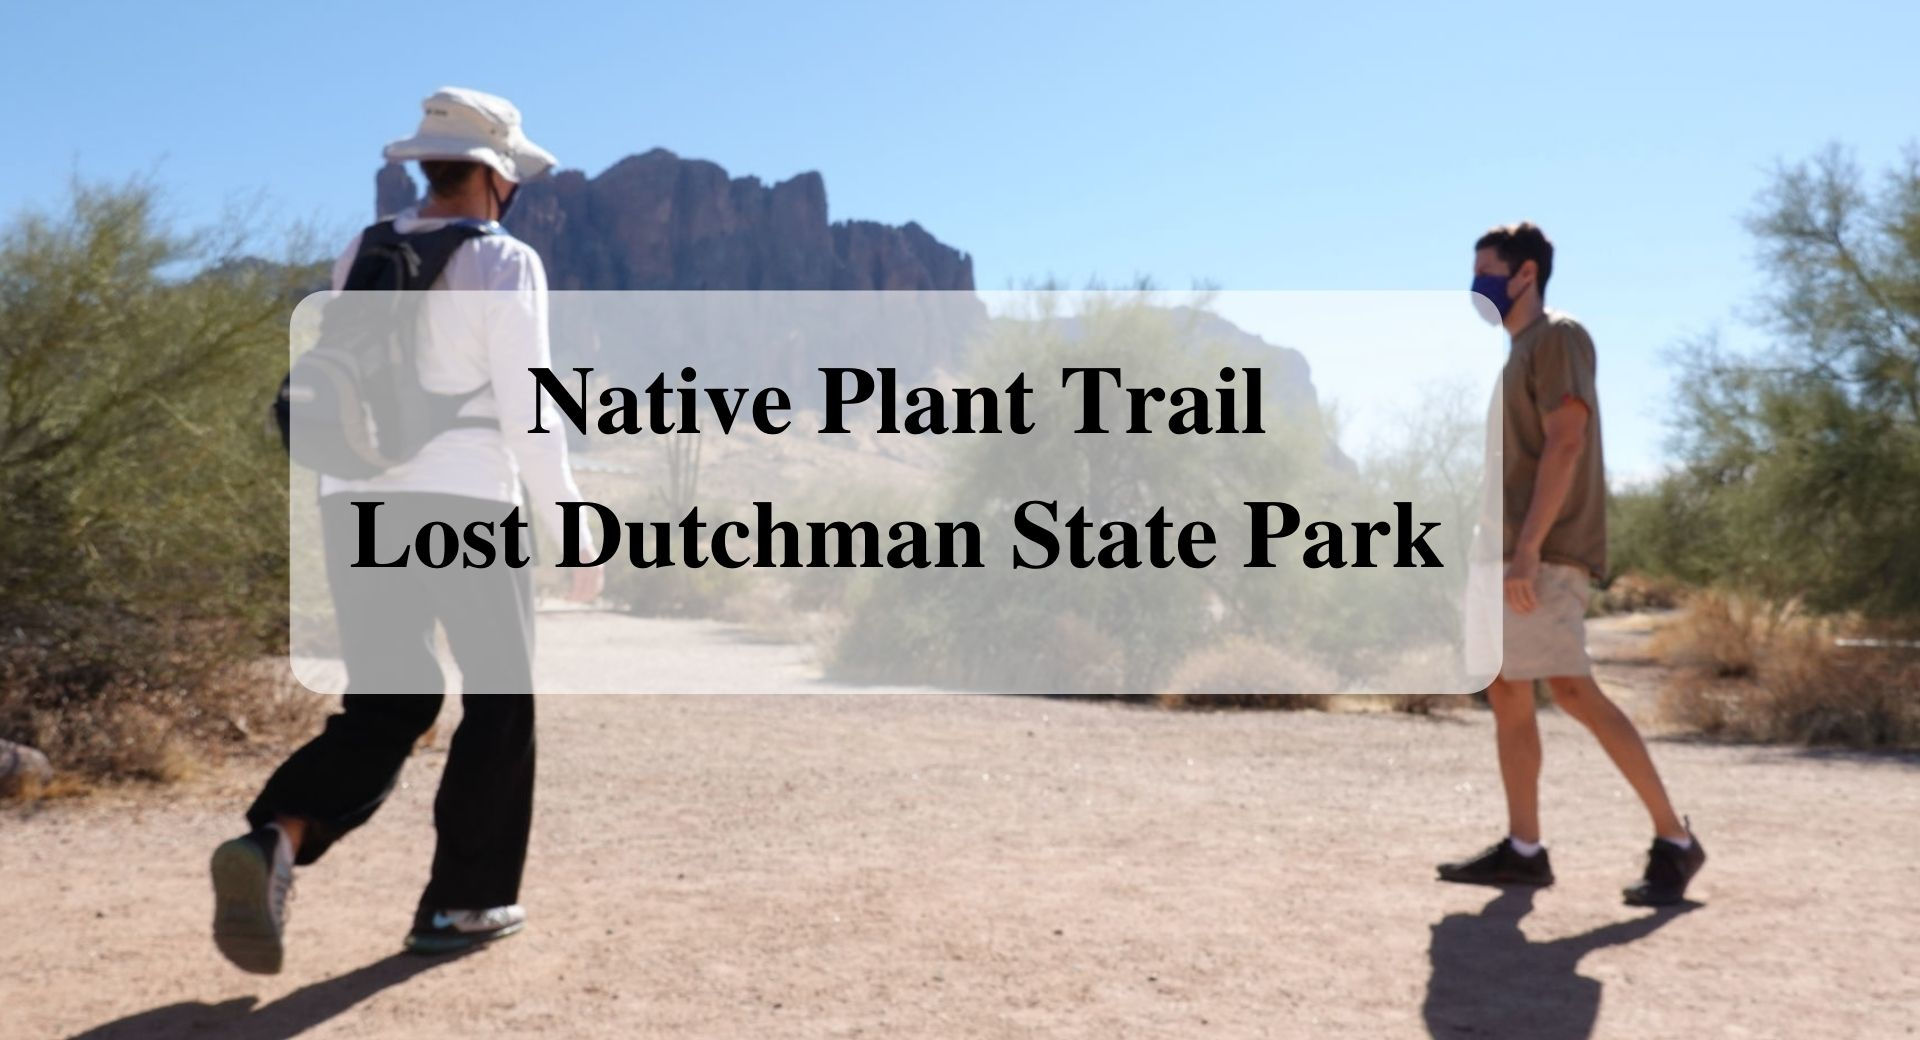 Native Plant Trail Lost Dutchman State Park, Forever sabbatical